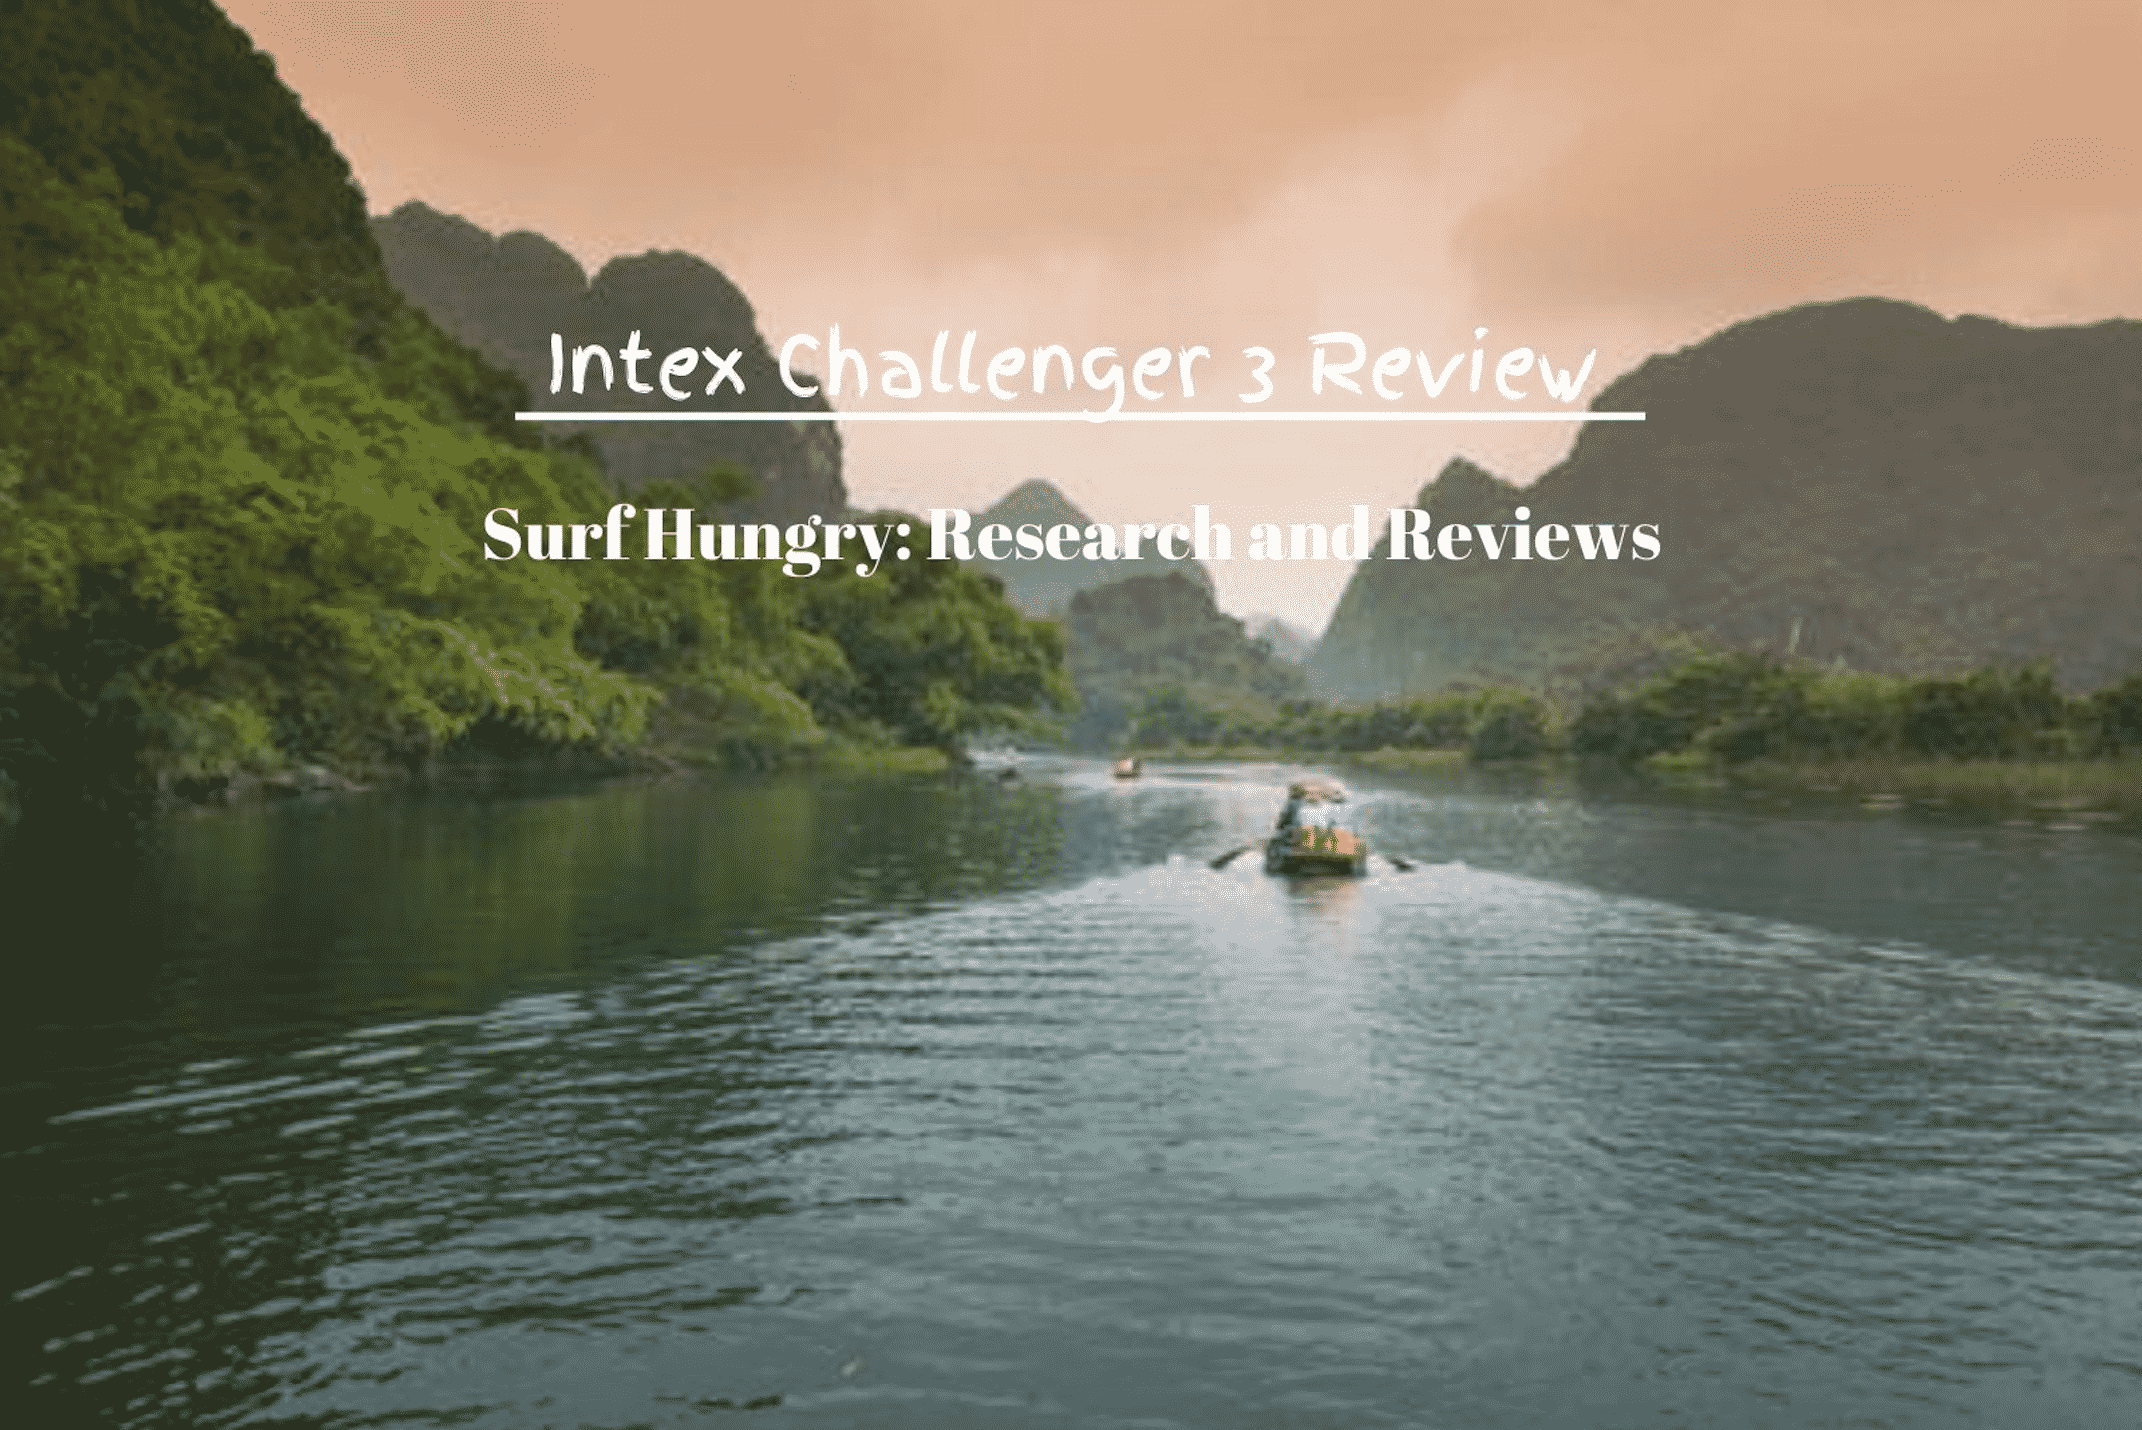 intex challenger 3 review